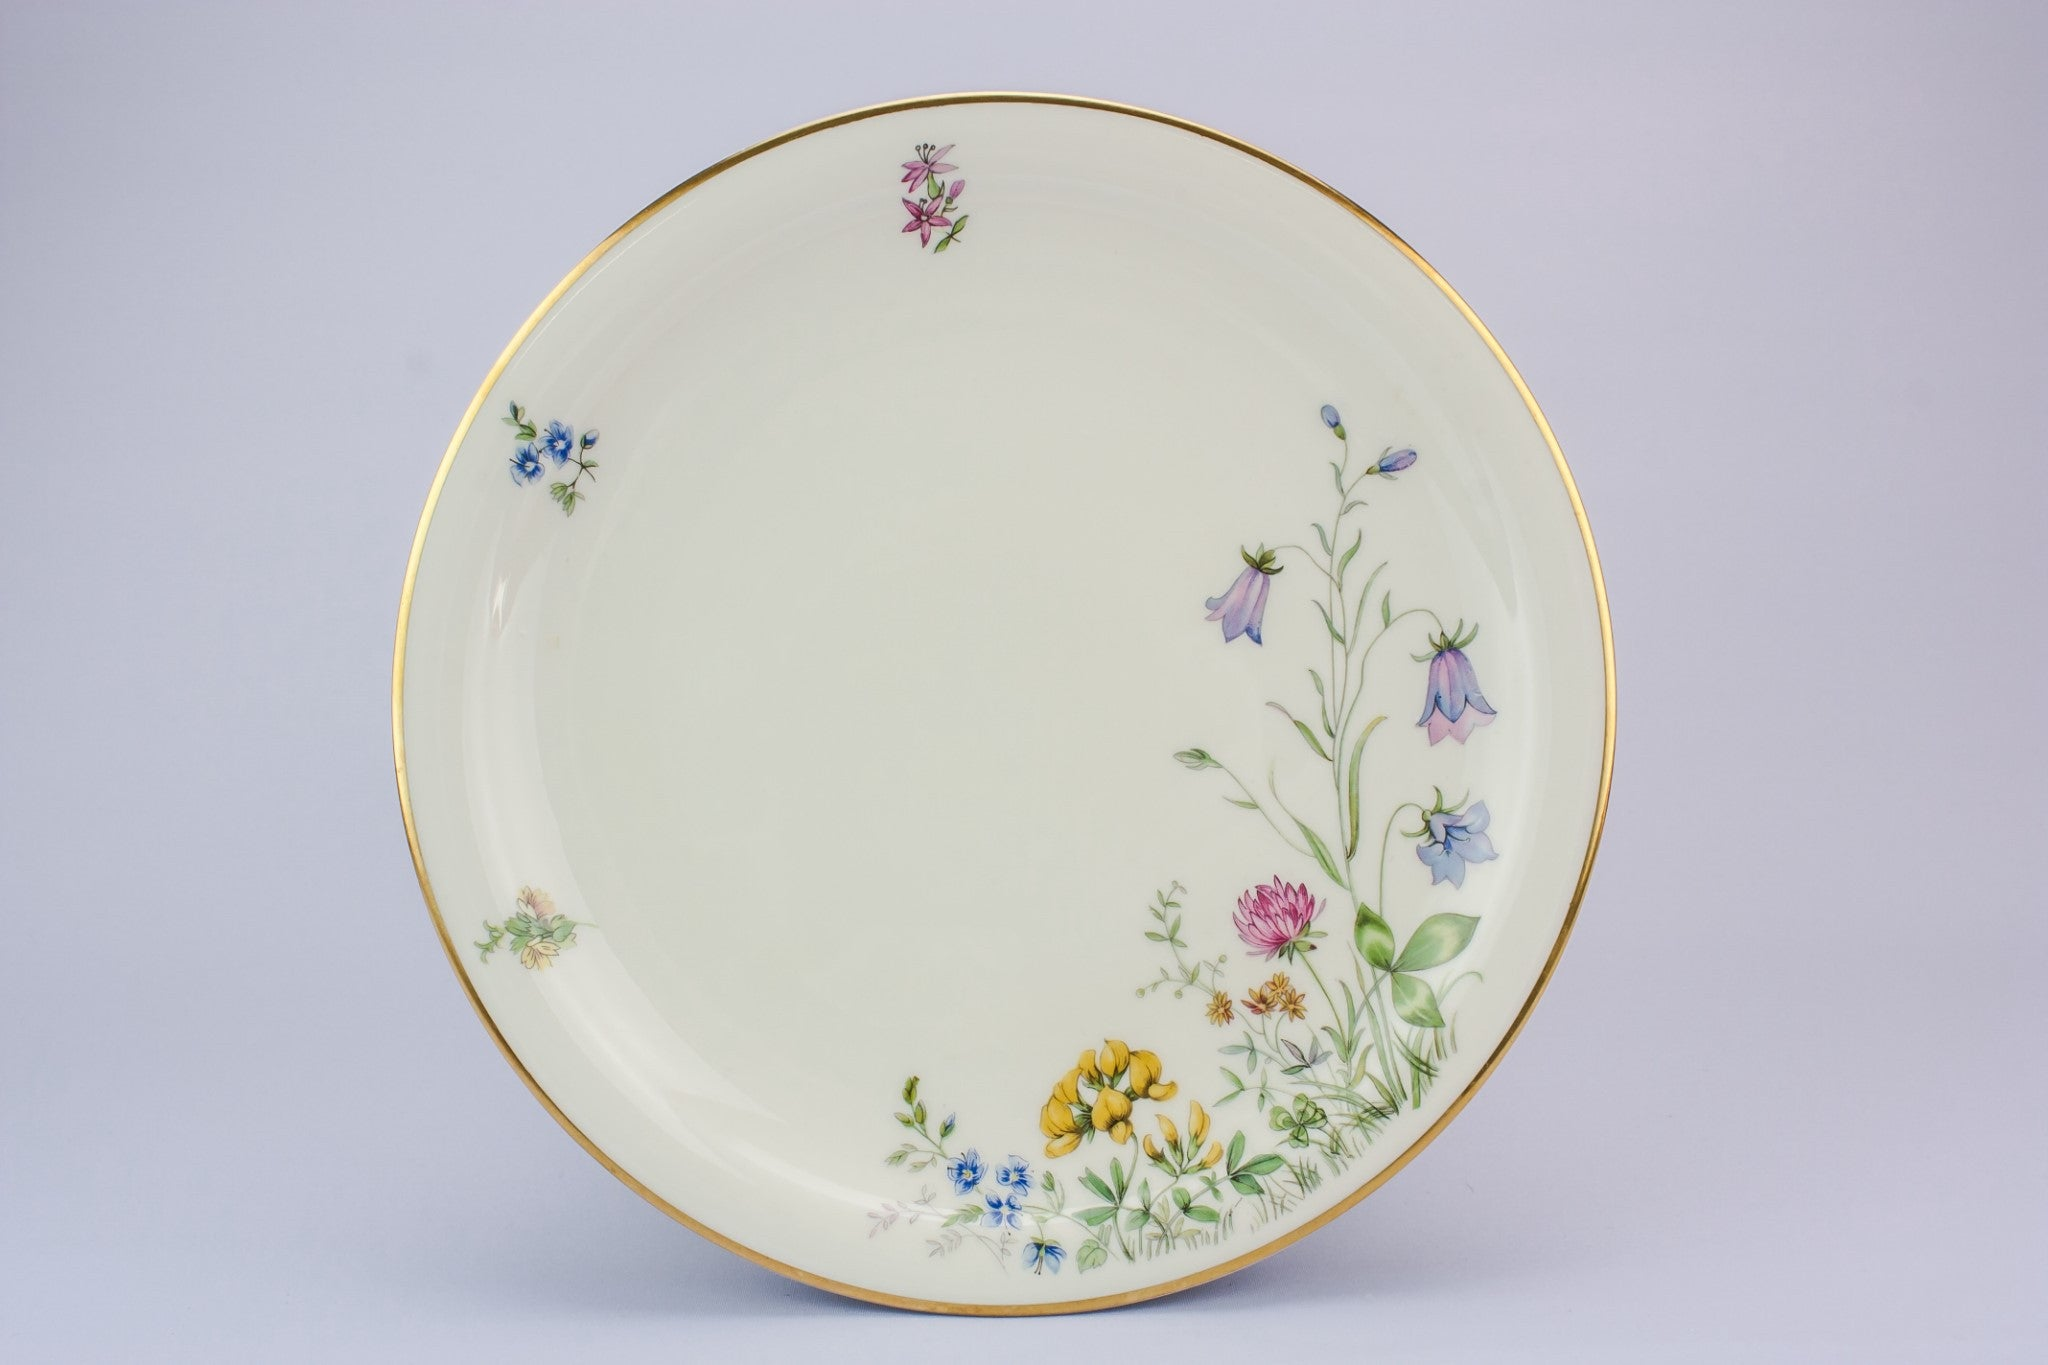 6 medium porcelain plates